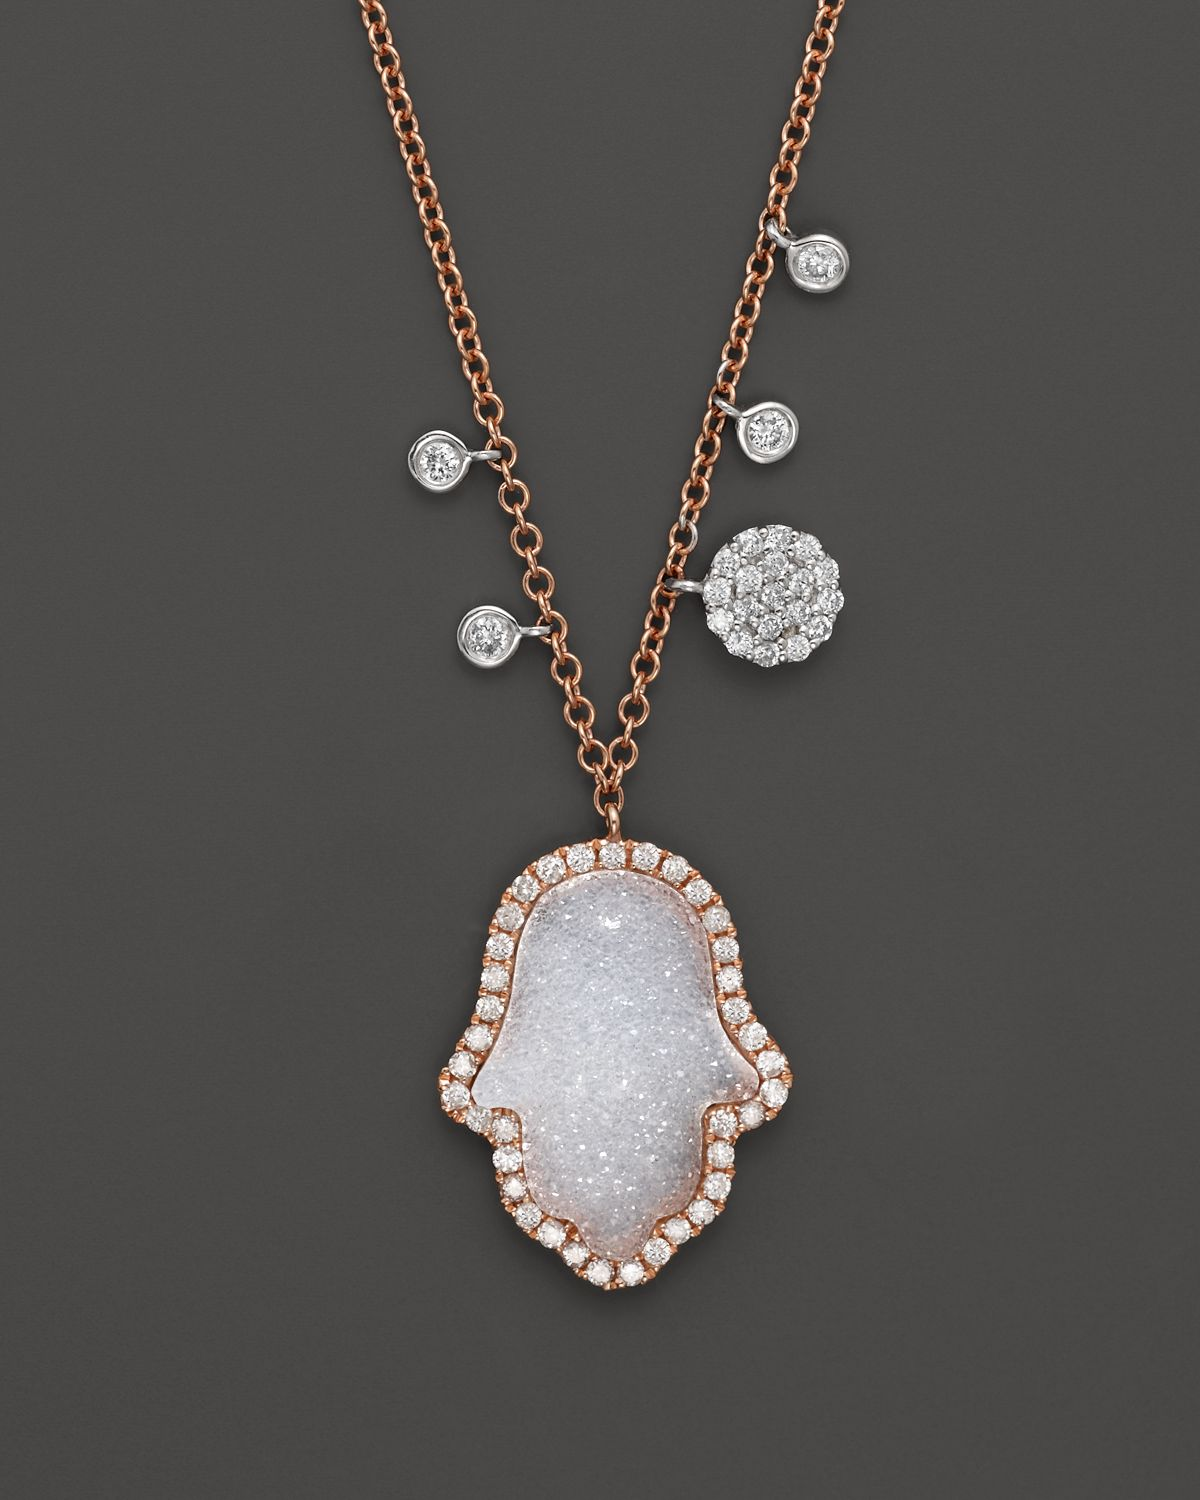 Meira T 14k Rose Gold Diamond And Druzy Hamsa Necklace In